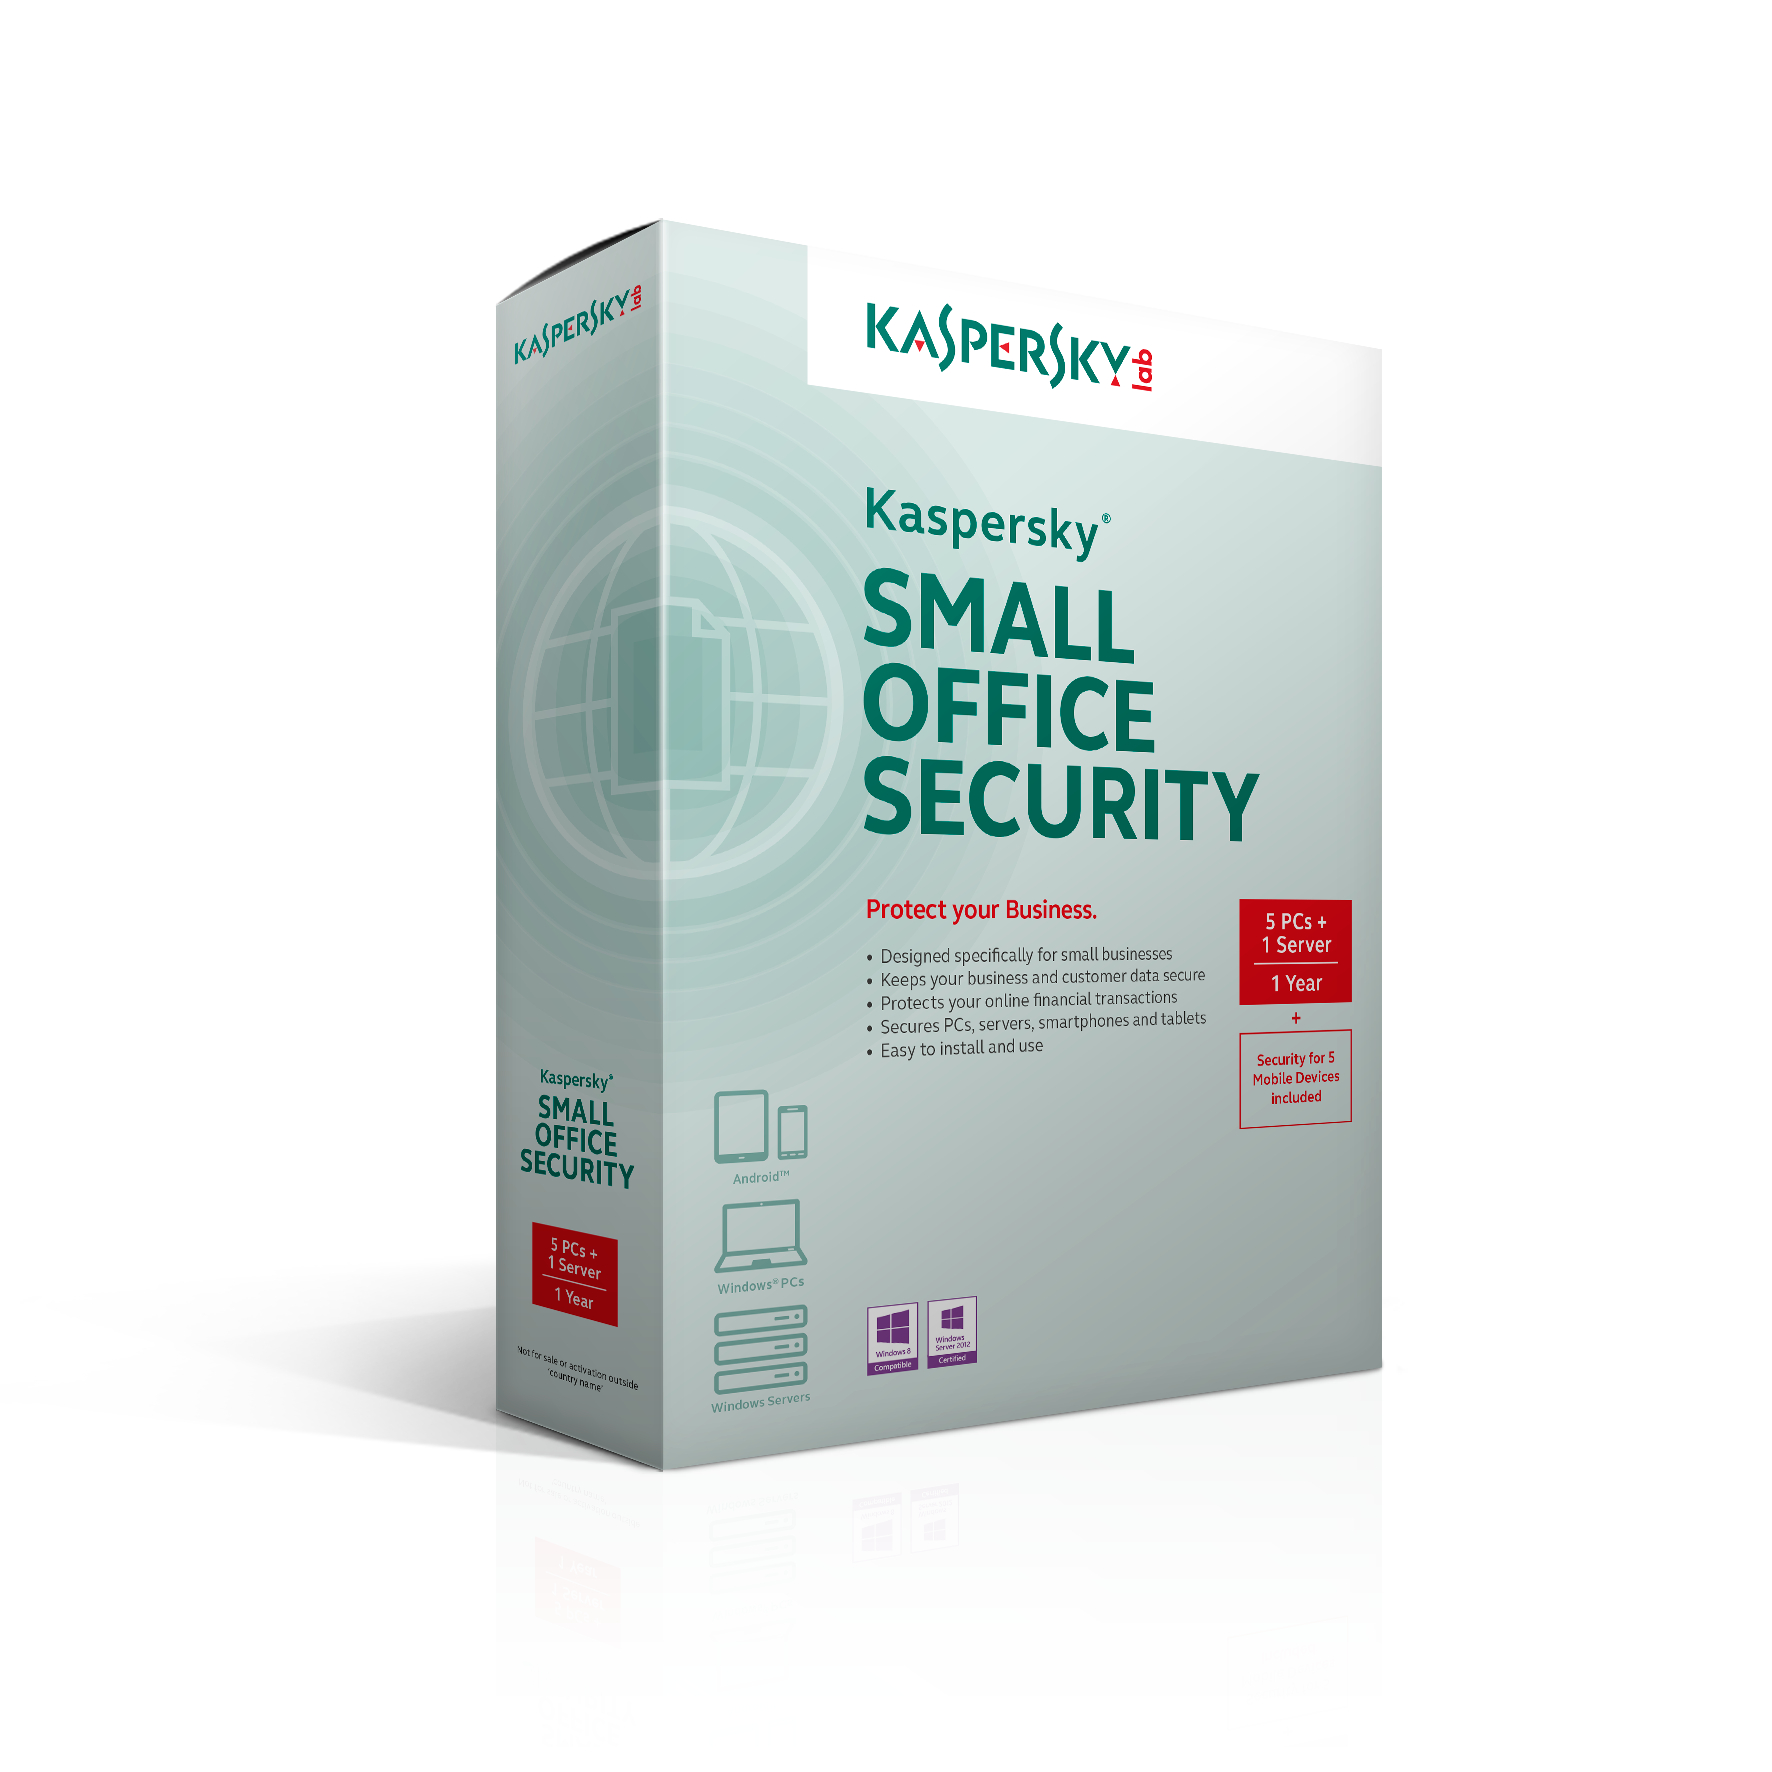 kaspersky_smallbusiness.jpg